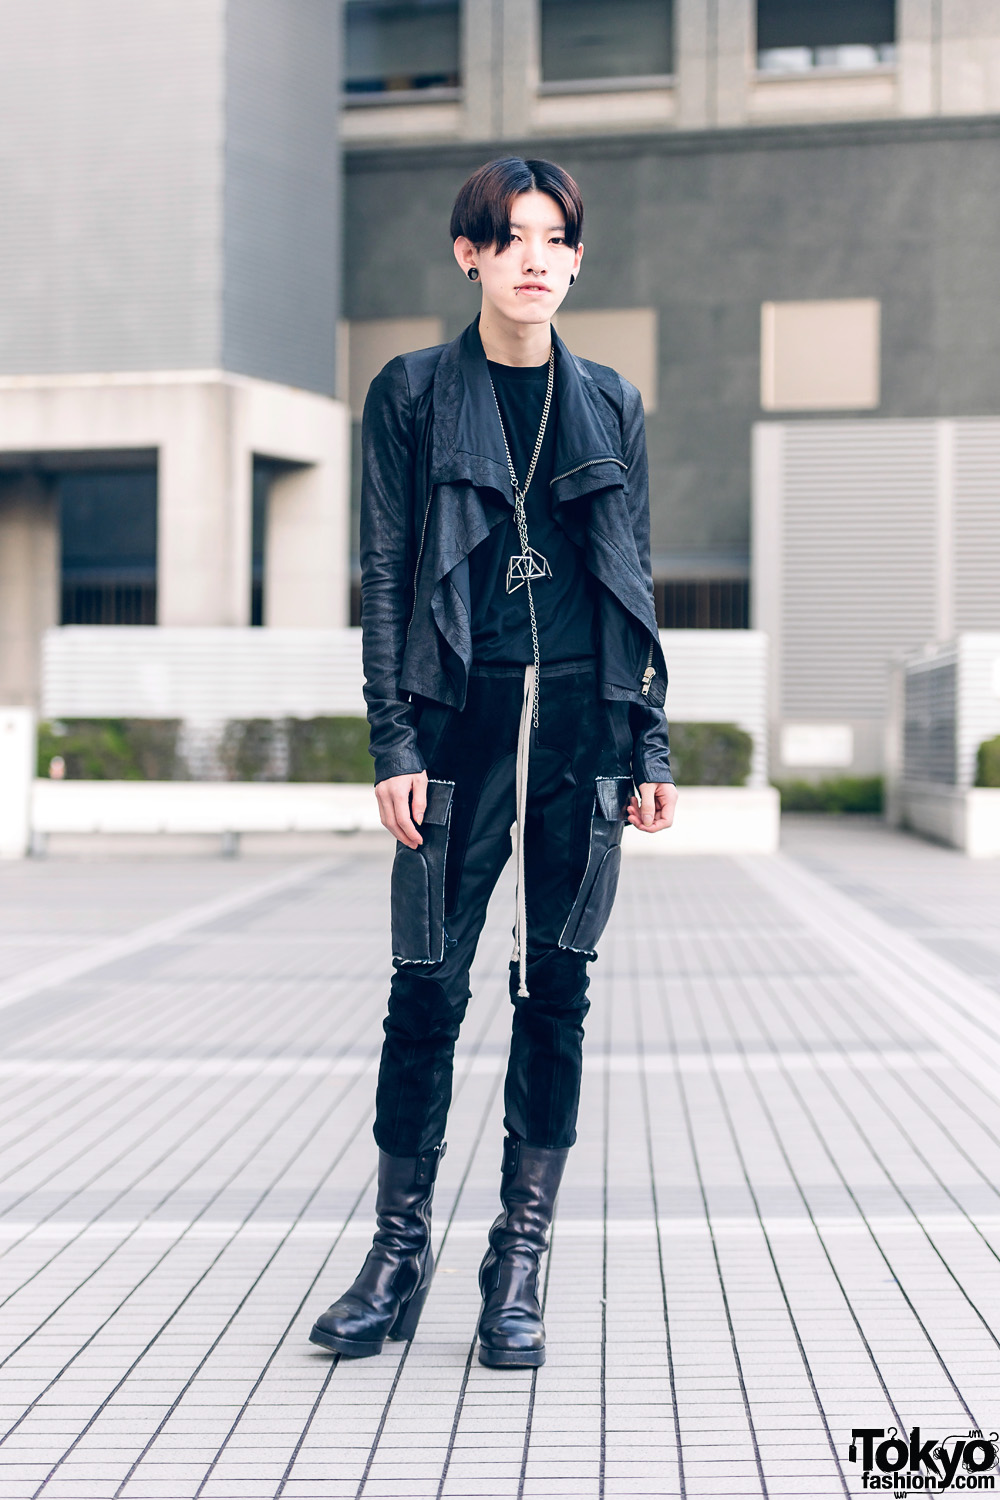 All Black Rick Owens Street Fashion w/ Skinny Pants, Platform Boots & Chains